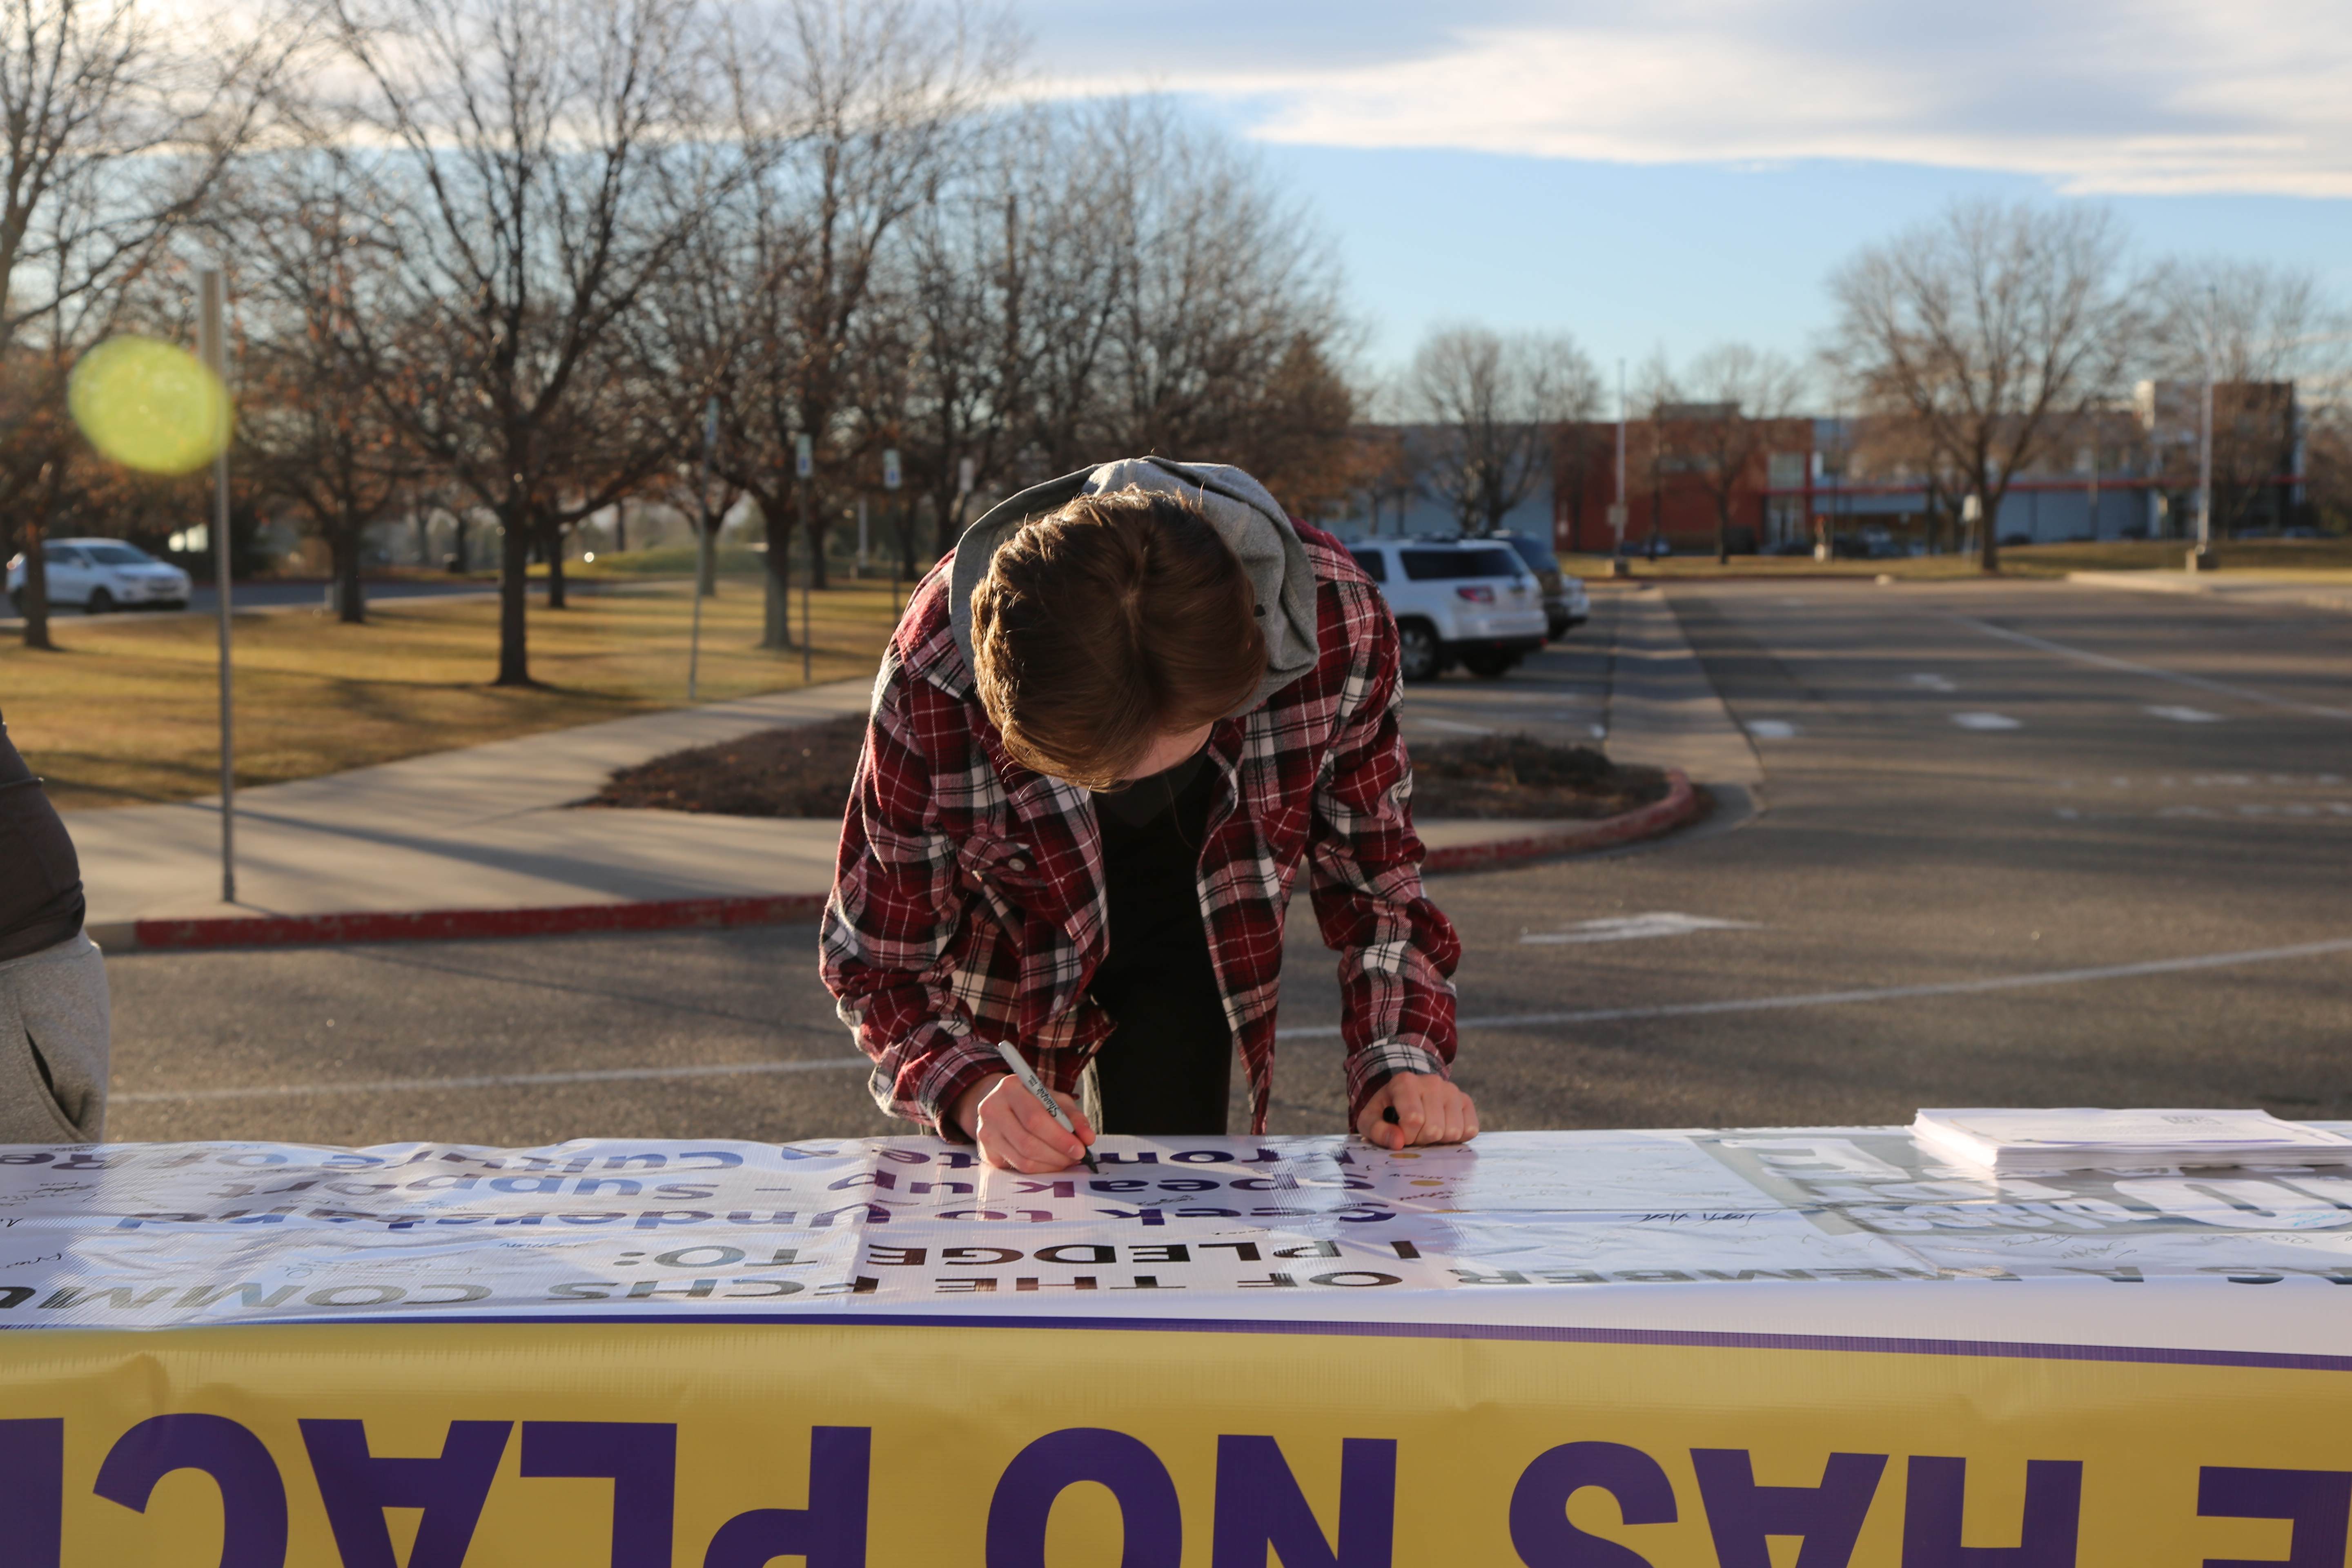 Student signing the No Place for Hate banner outside Fort Collins High School.